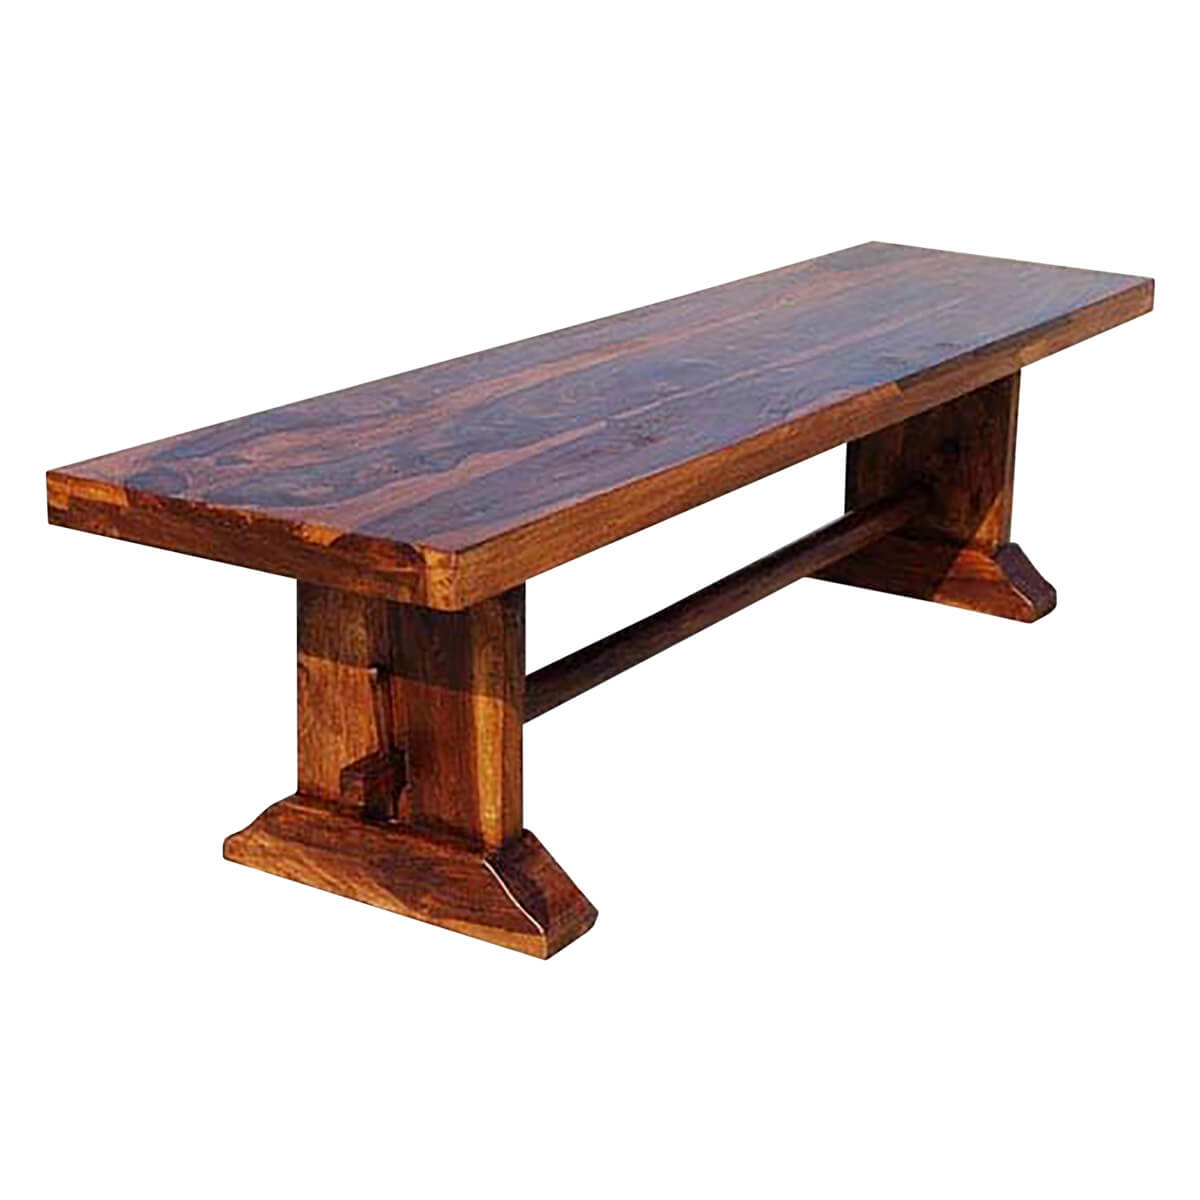 Wooden Bench Table Louvre Rustic Solid Wood Indoor Wooden Bench